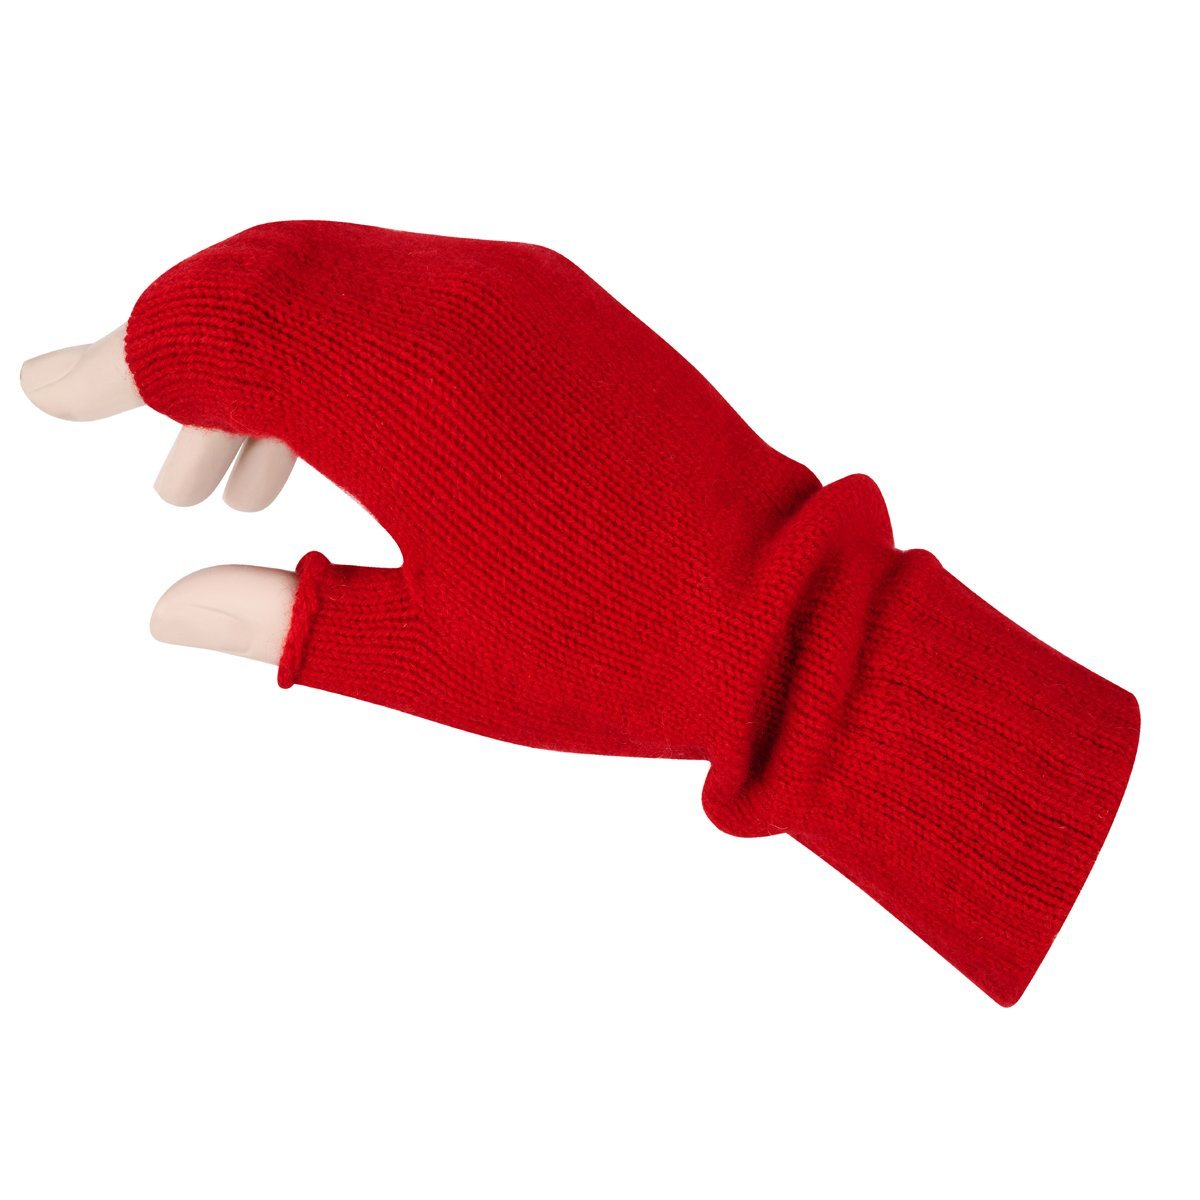 Women's Fingerless Mitts Pure Cashmere Made in Scotland (Cardinal Red)